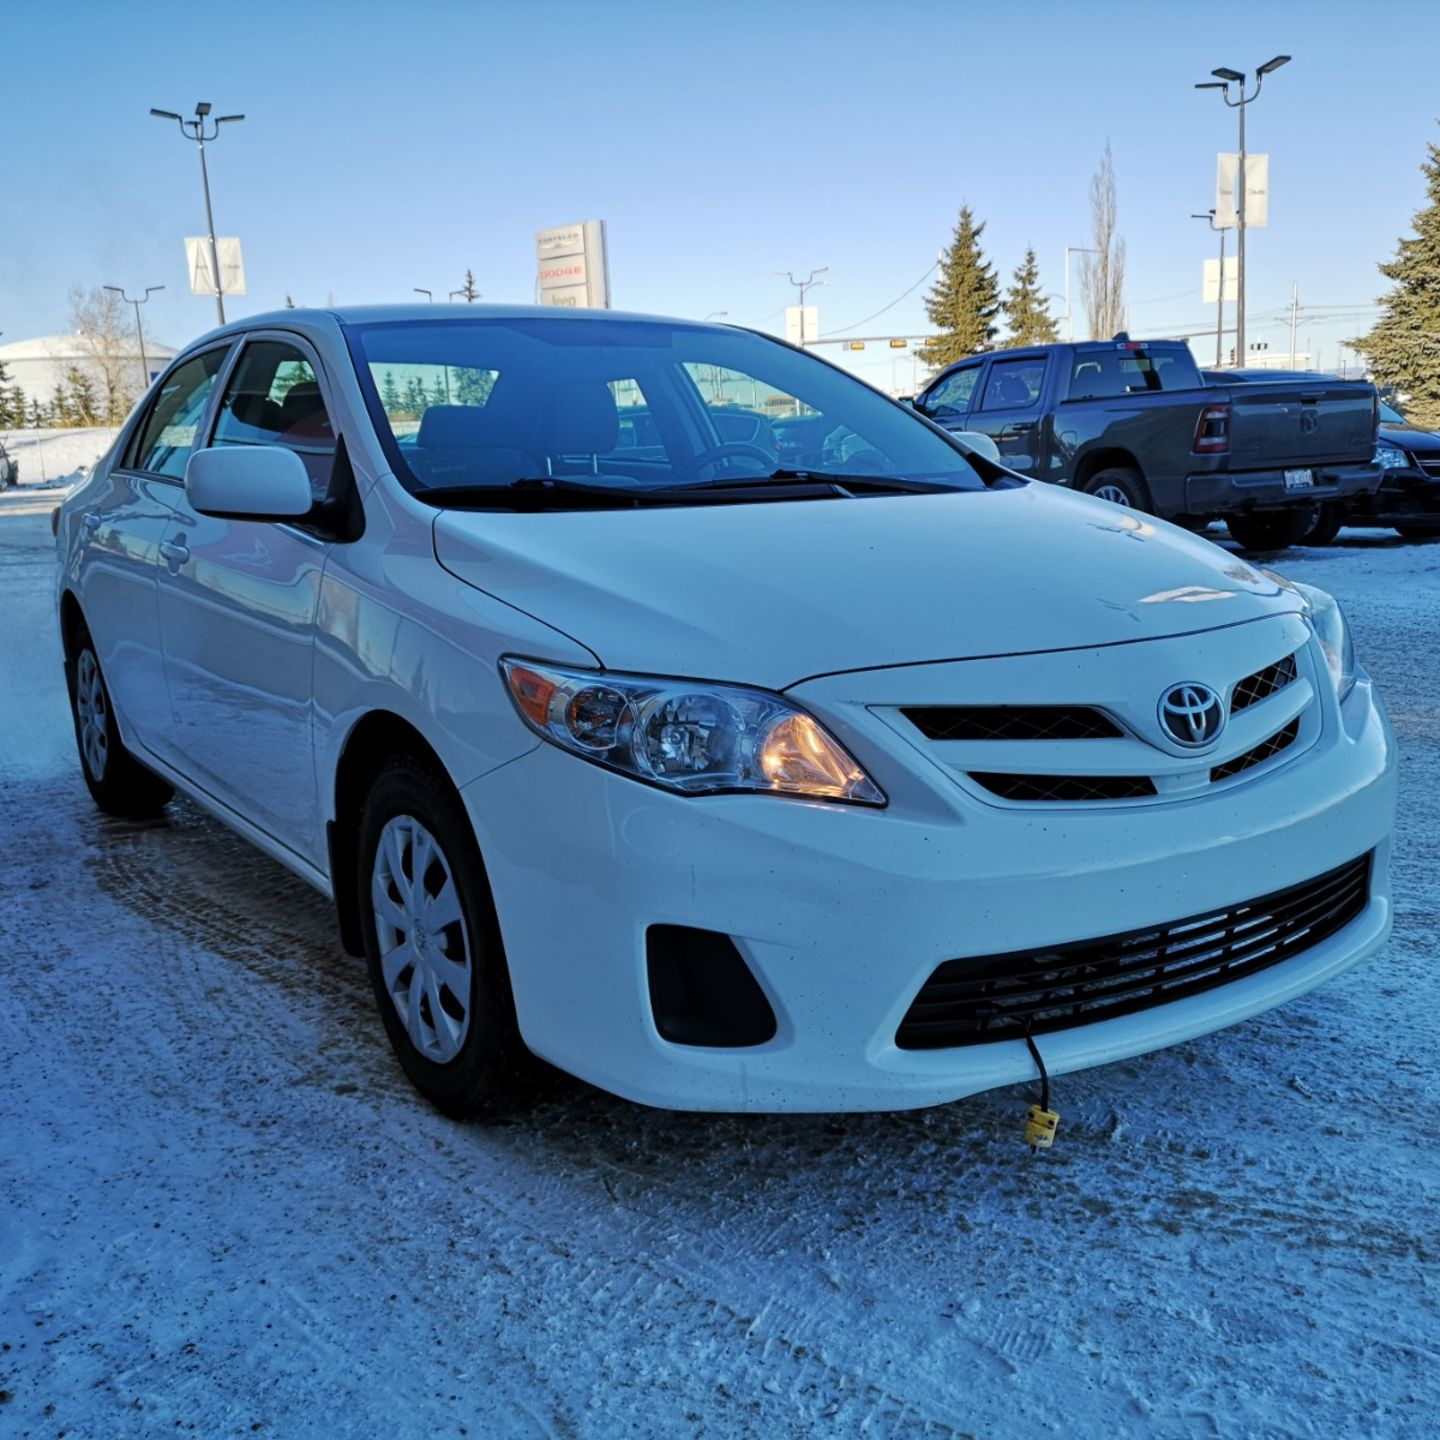 2011 Toyota Corolla CE for sale in Edmonton, Alberta